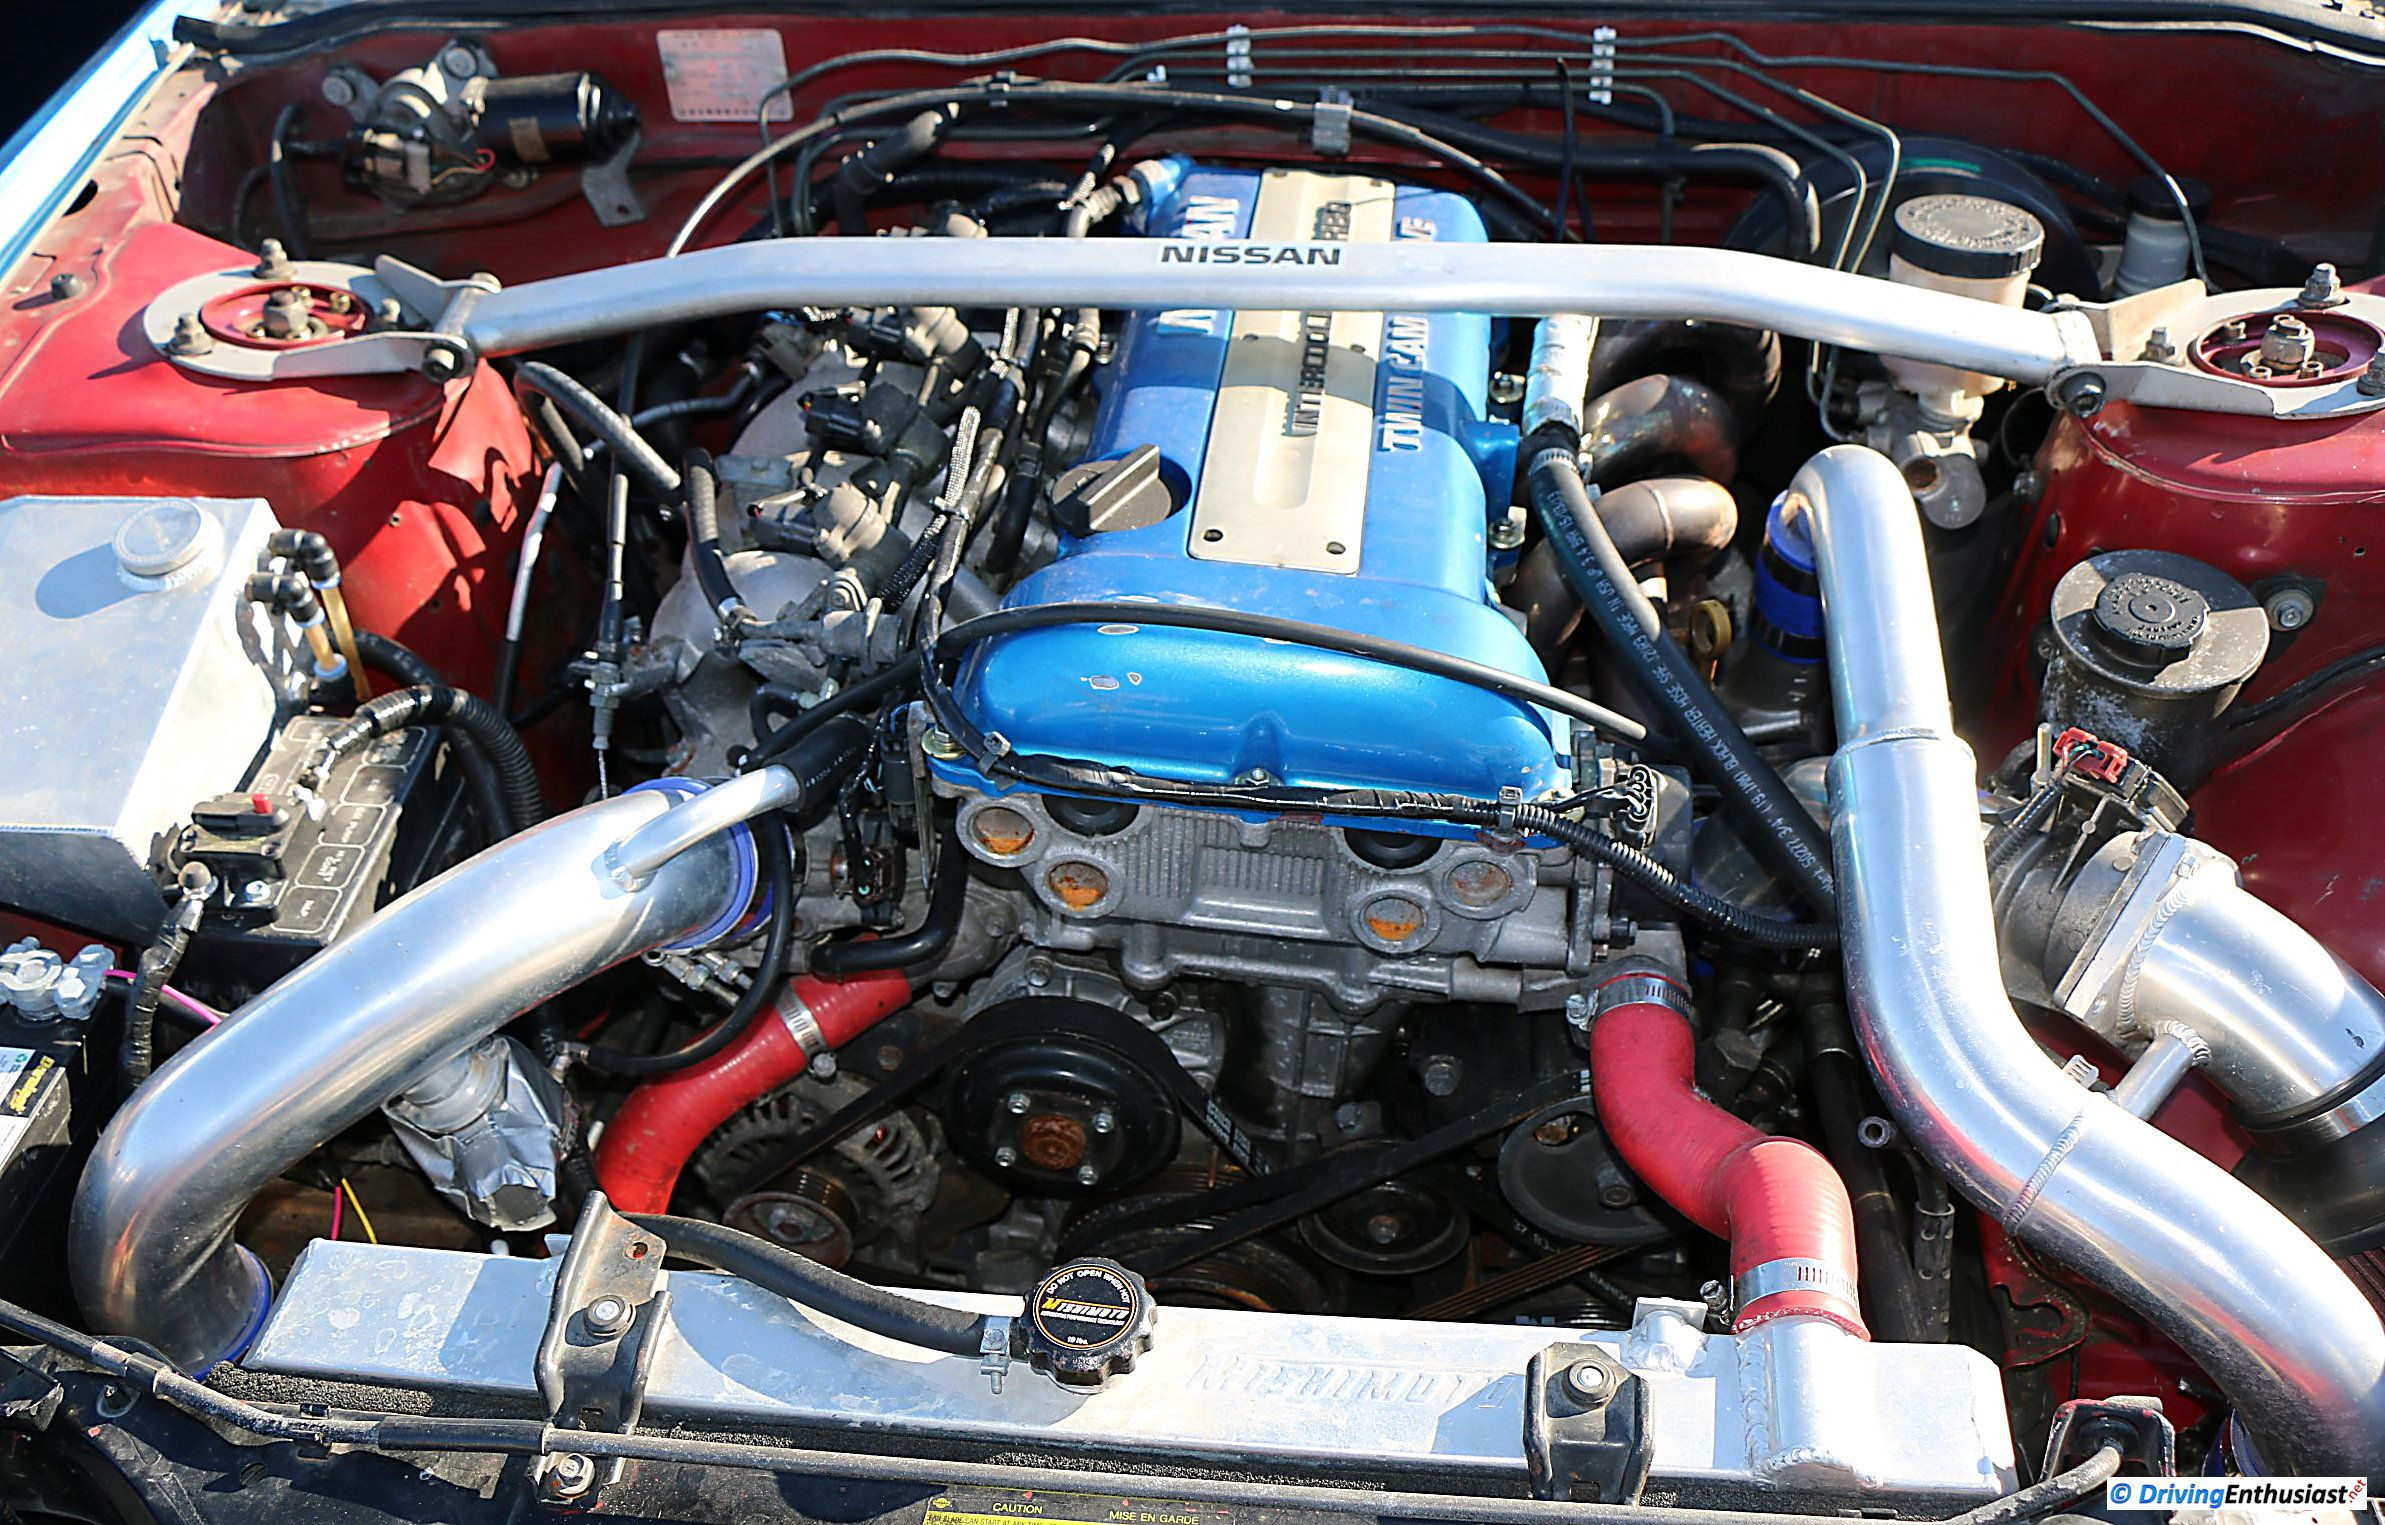 Nissan 240SX (Silvia S13) with 2 0L SR20DET turbo I4 engine